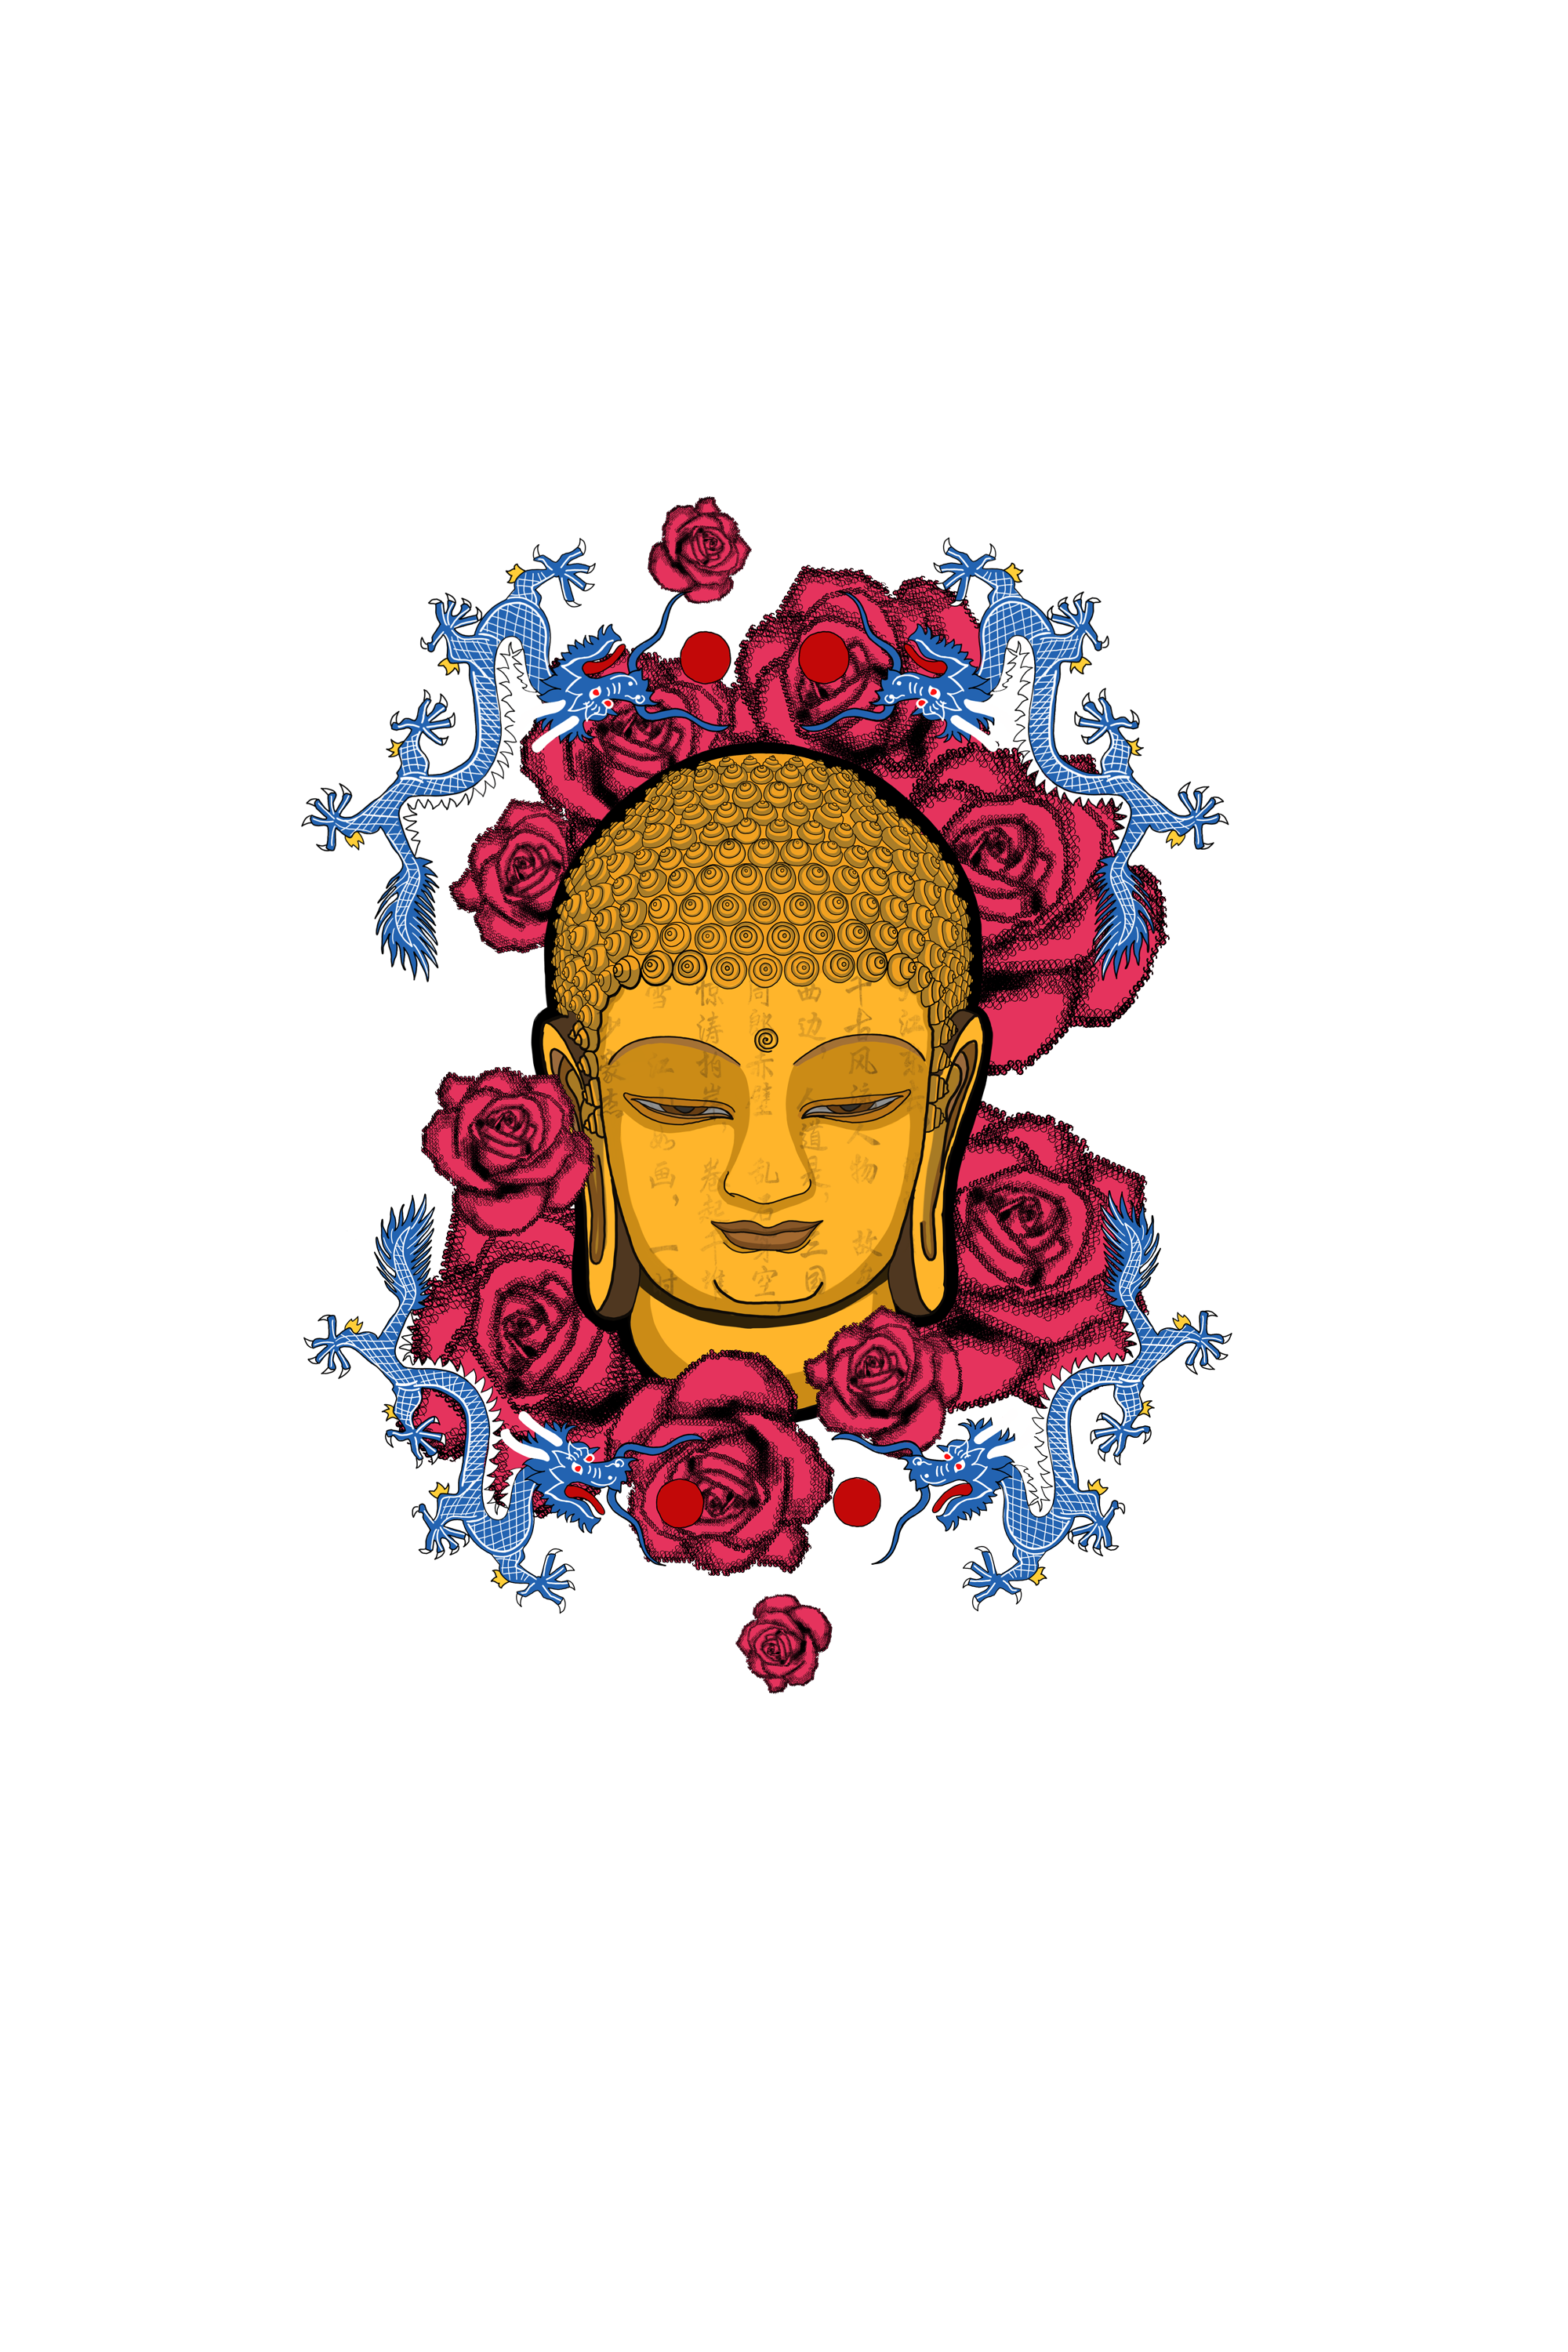 JING BUDDHA FROM THE ROSE HEAVEN